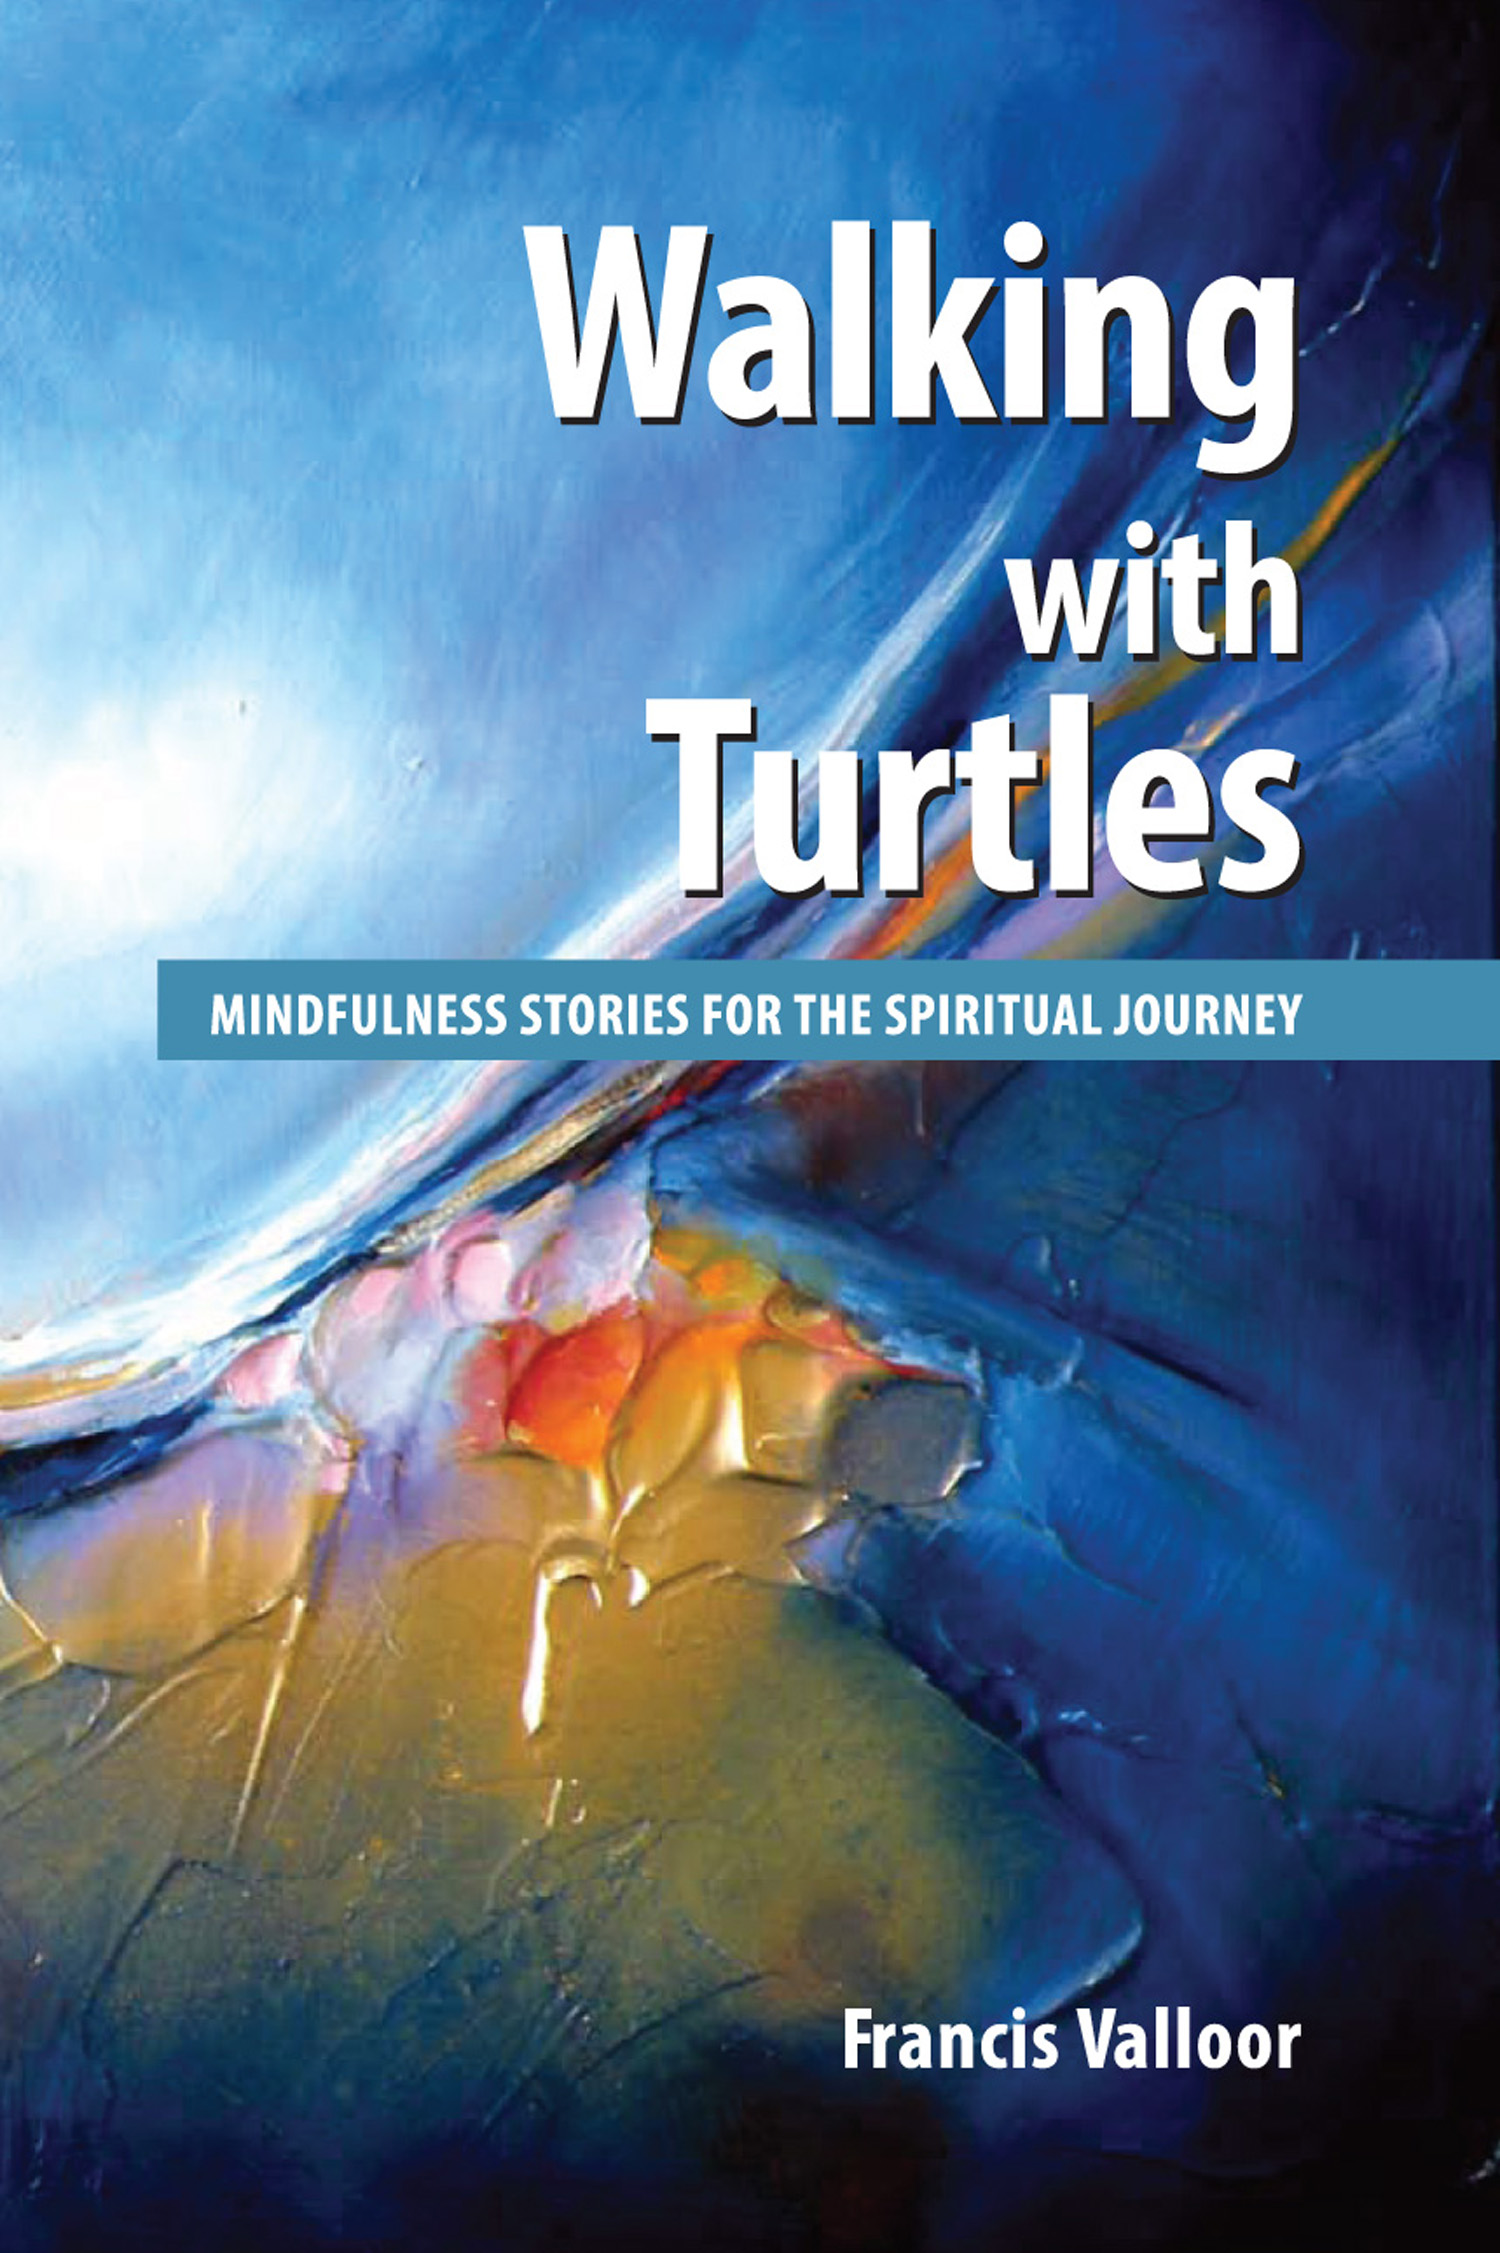 Walking with Turtles : Mindfulness Stories For The Spiritual Journey, an  Ebook by Francis Valloor